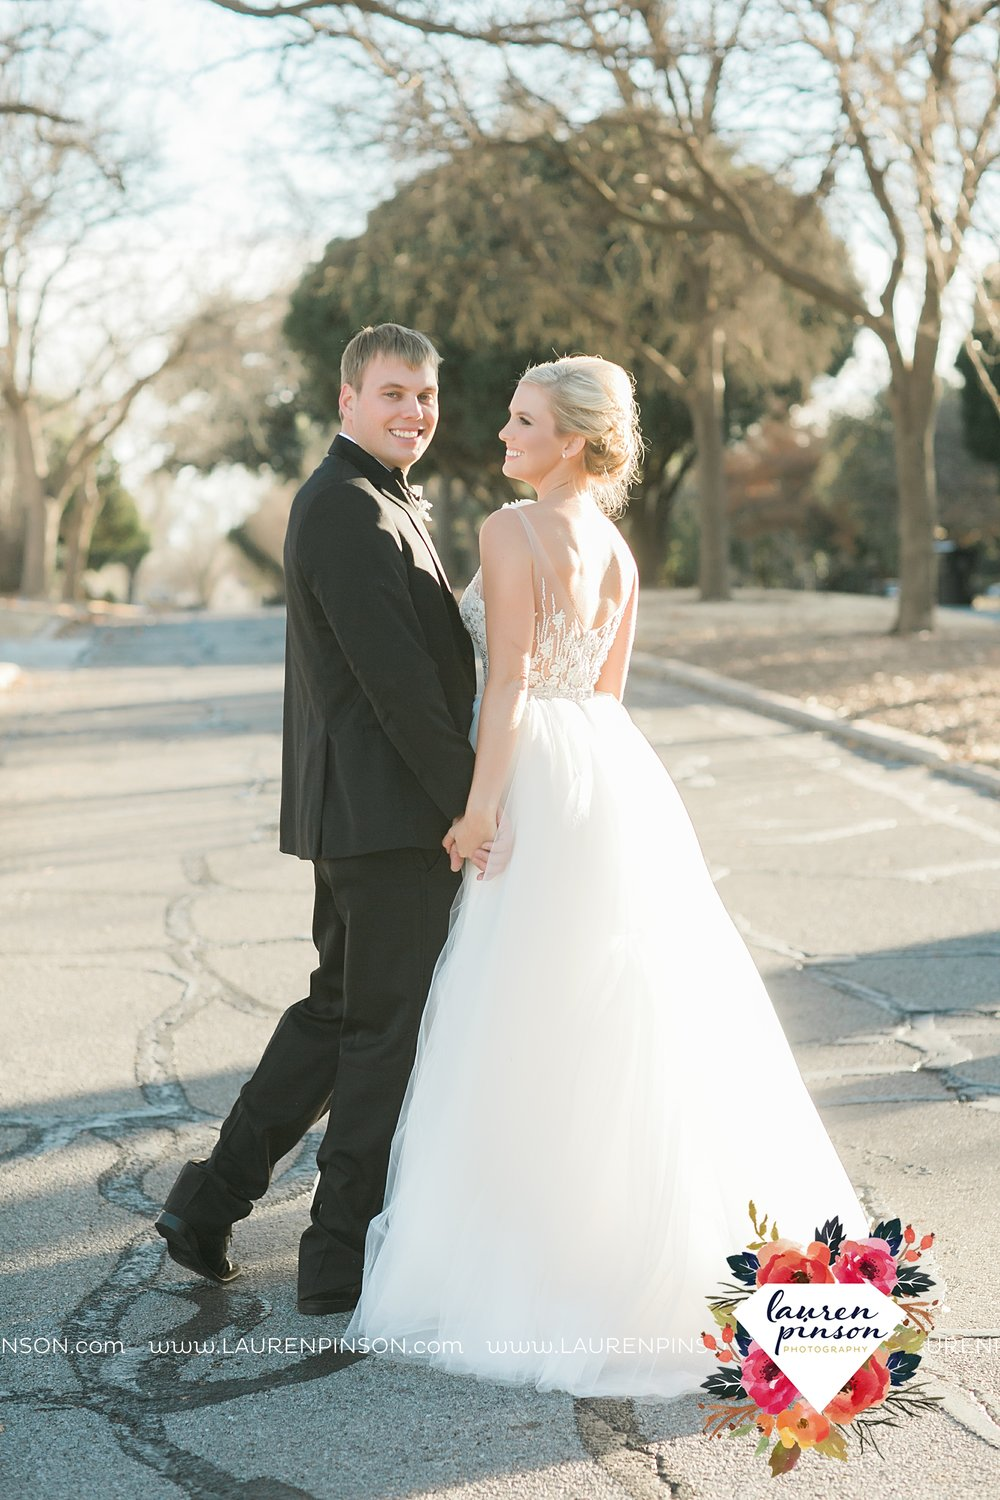 wichita-falls-texas-weddiing-photographer-the-wellingtong-two-clever-chicks-our-lady-queen-of-peace-winter-wedding-photography_4083.jpg